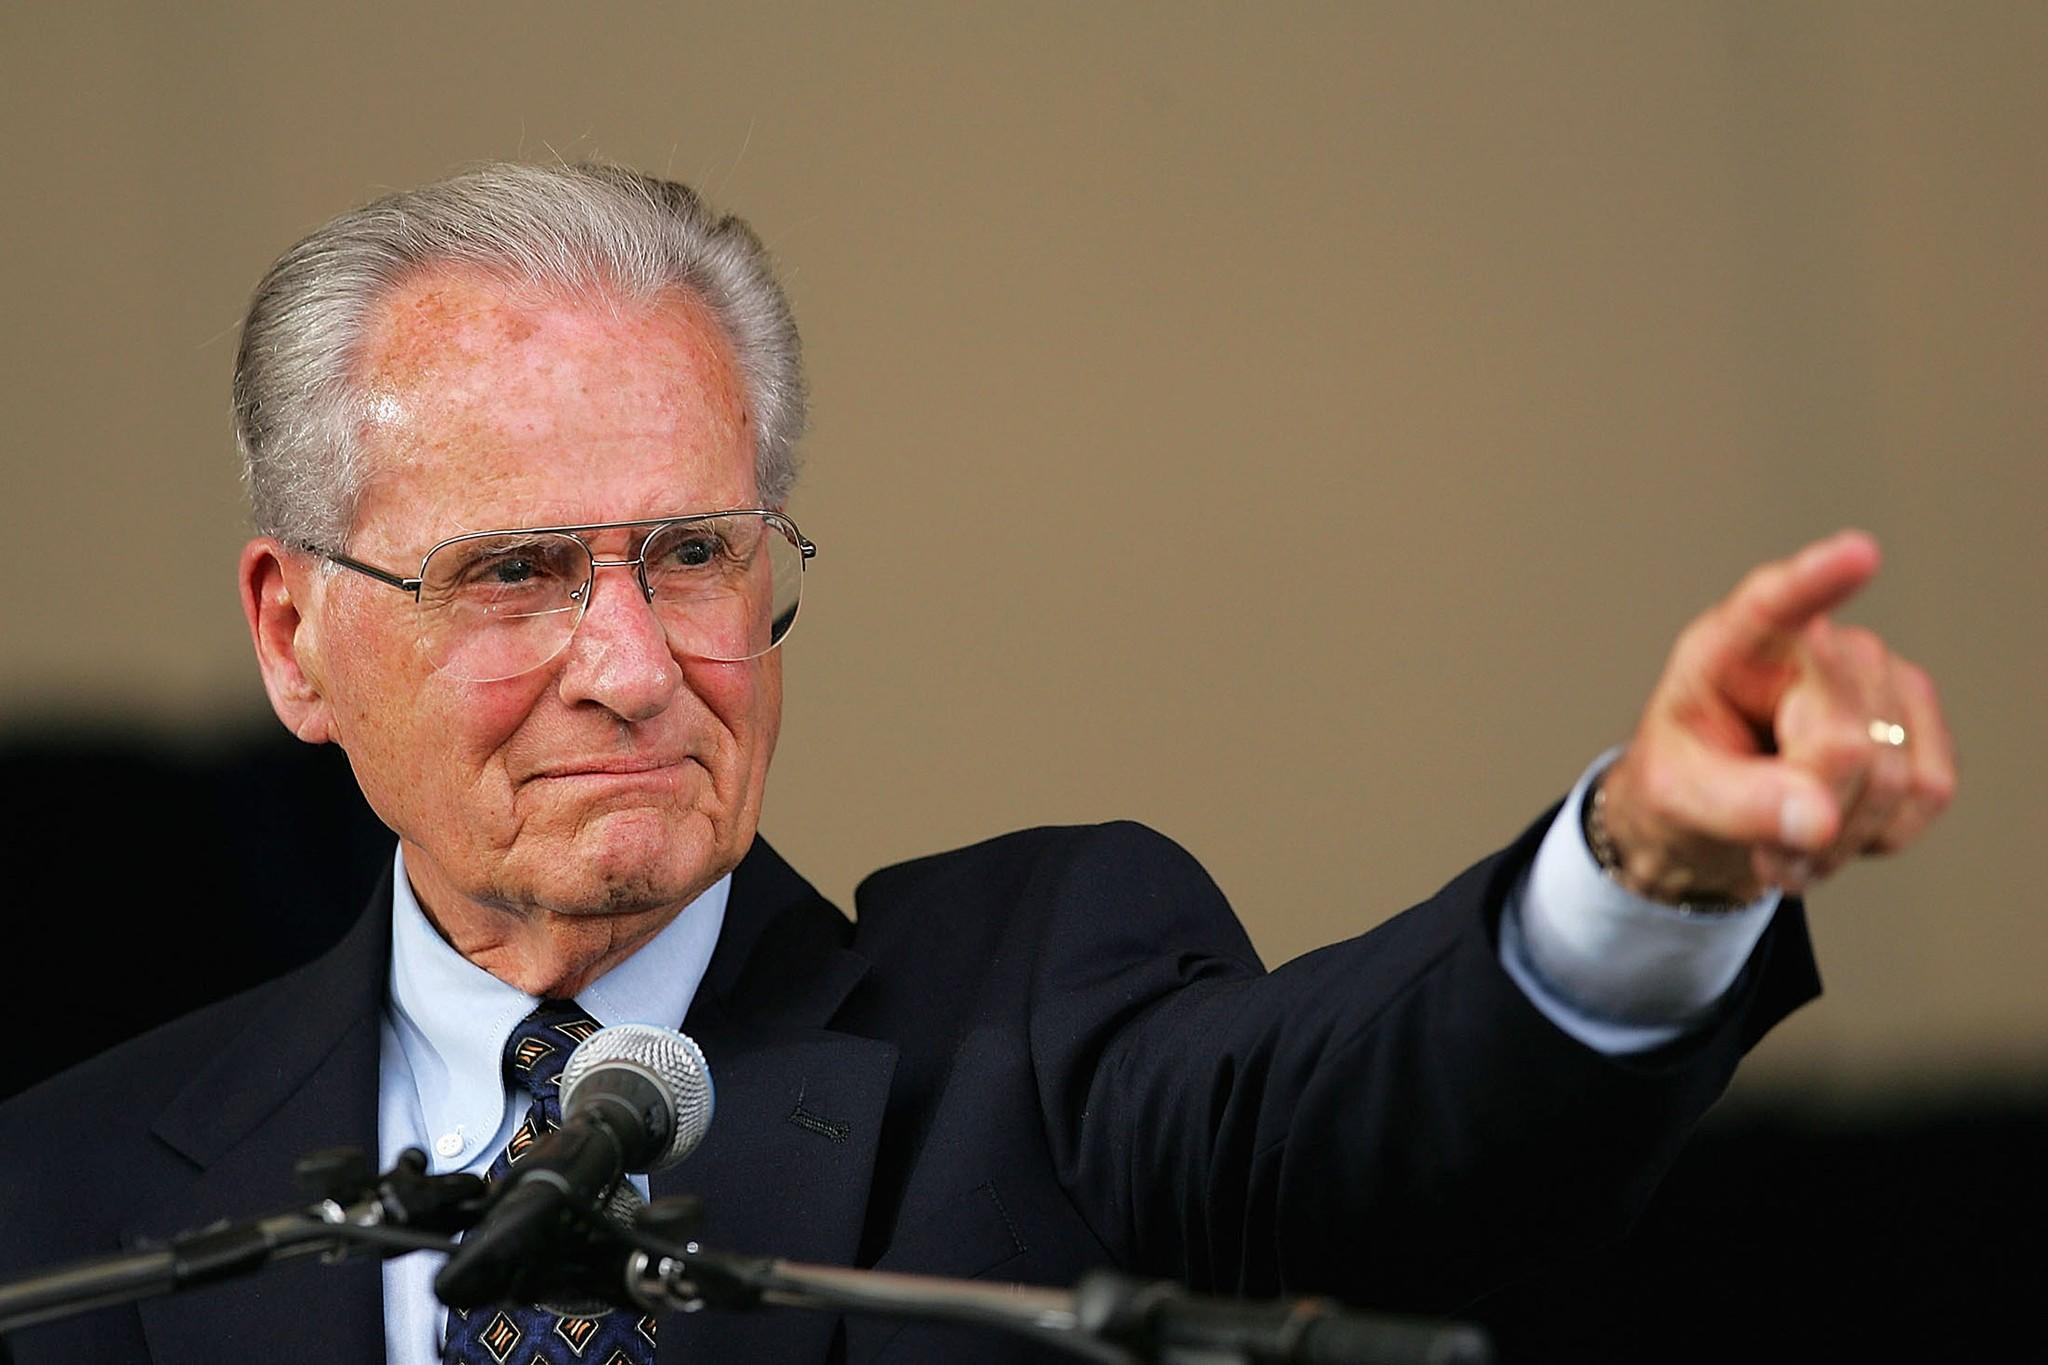 Jerry Coleman points to his wife in the crowd after receiving the Ford C. Frick Award, presented annually to a baseball broadcaster for major contributions to the game, during the Baseball Hall of Fame induction ceremony on July 31, 2005.